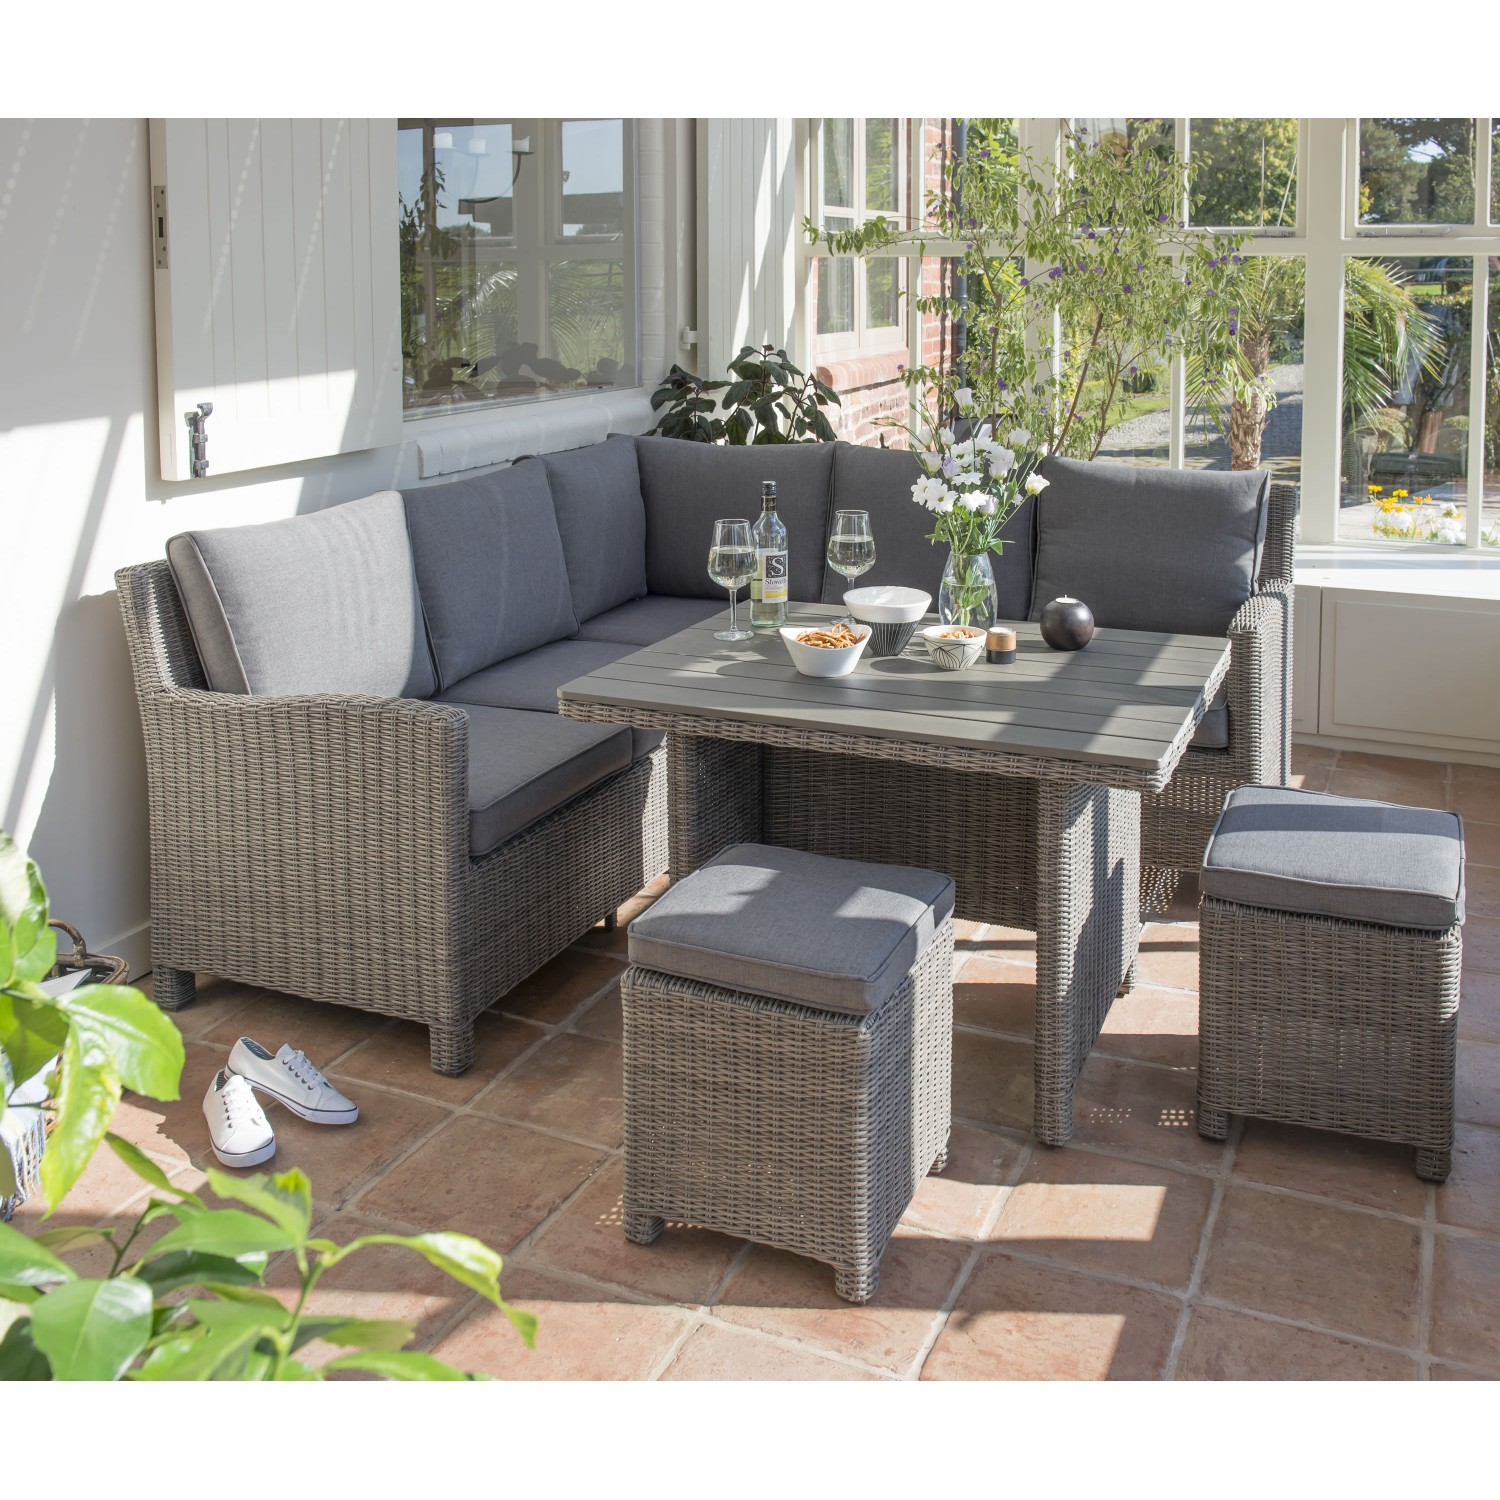 Outdoor Sofa Rattan Kettler Palma Mini Corner Set Rattan Garden Furniture Casual Dining